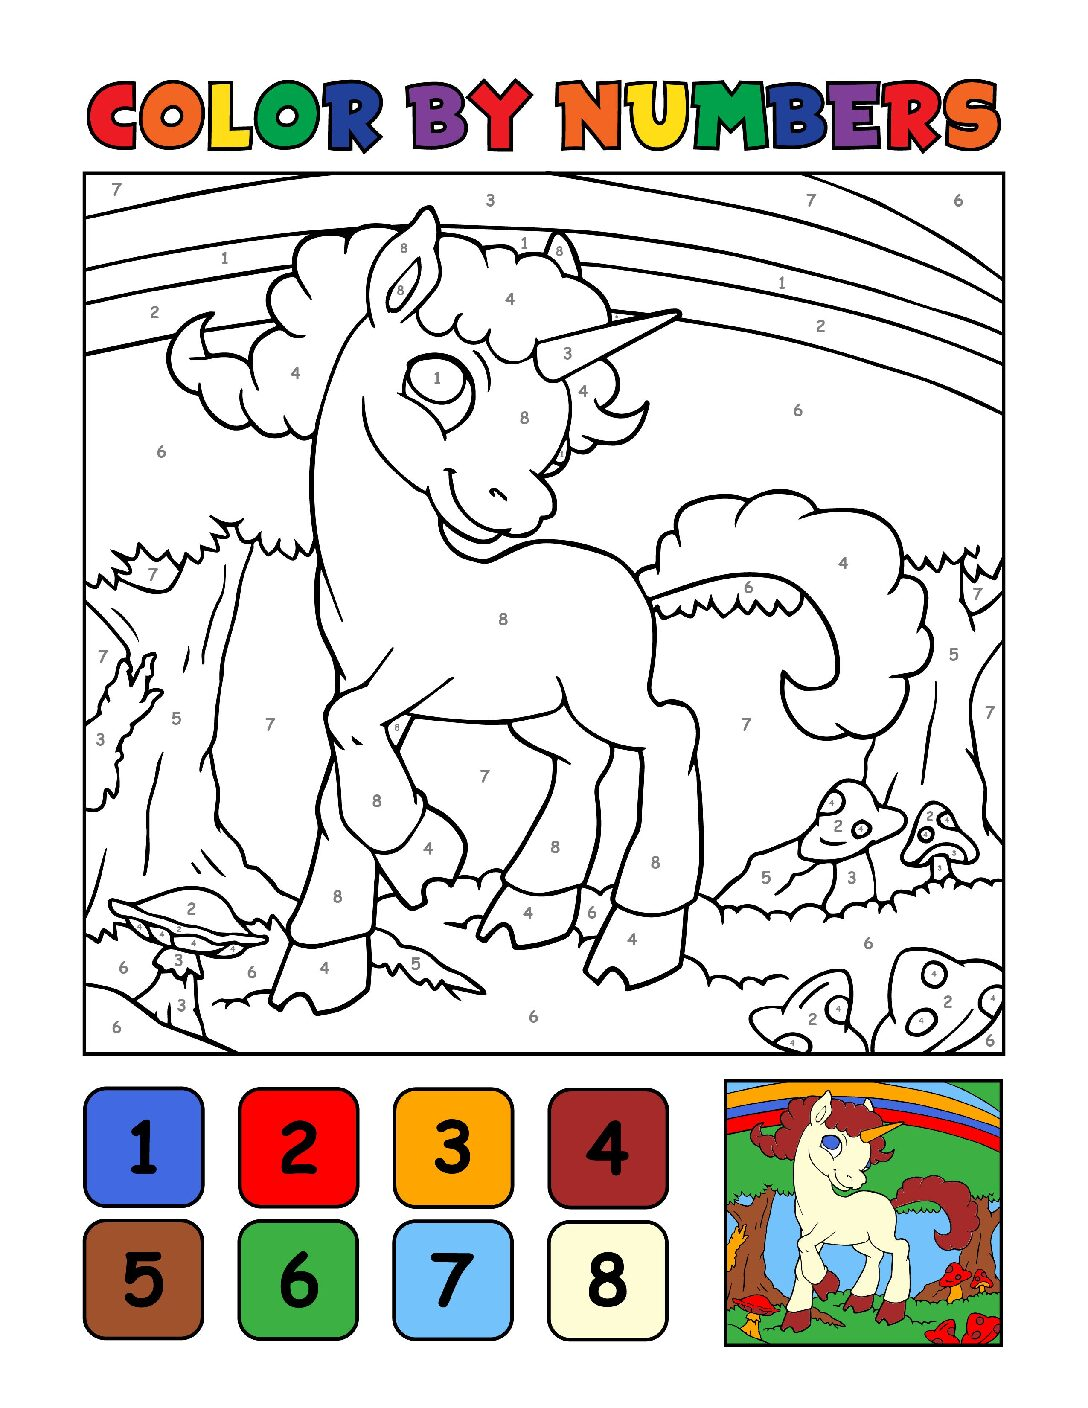 Color-by-Numbers-Kids_Unicorns-10-01-pdf Free Printable Unicorn Colouring Pages